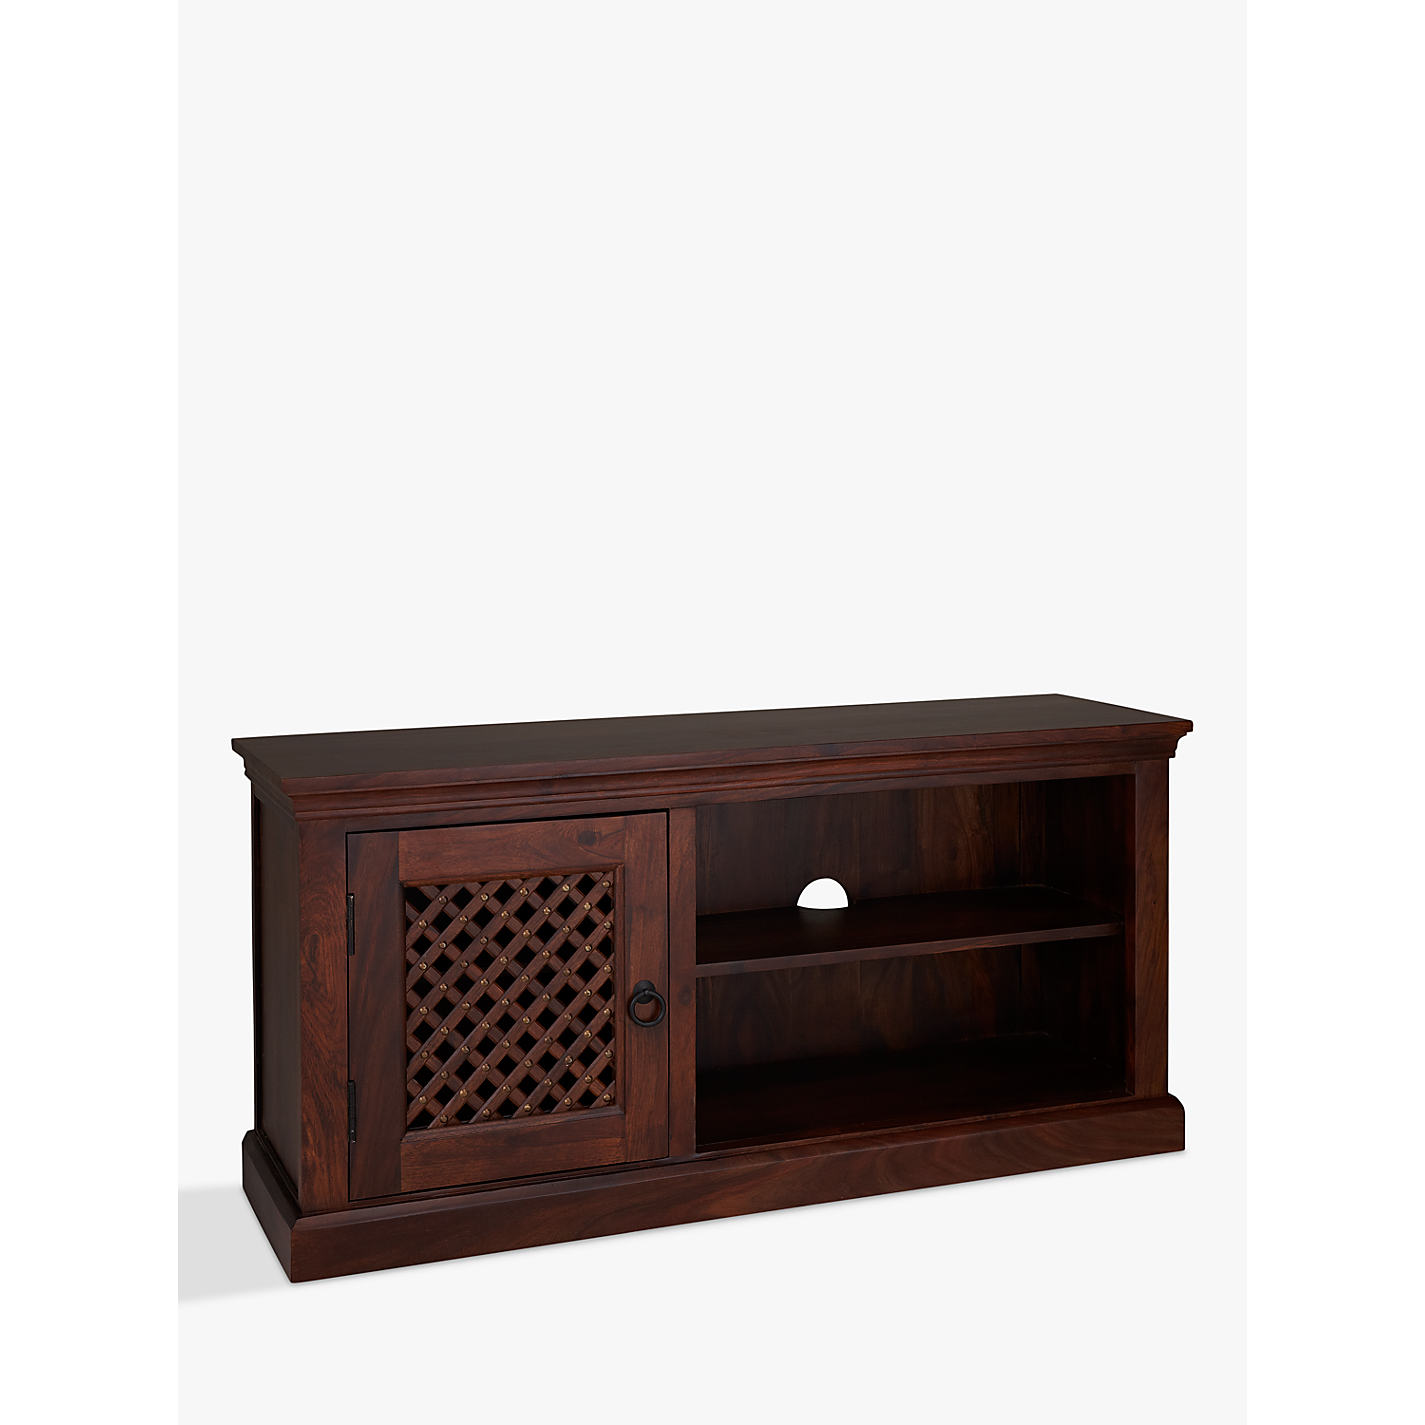 90 living room cabinets john lewis buy john lewis for John lewis chinese furniture